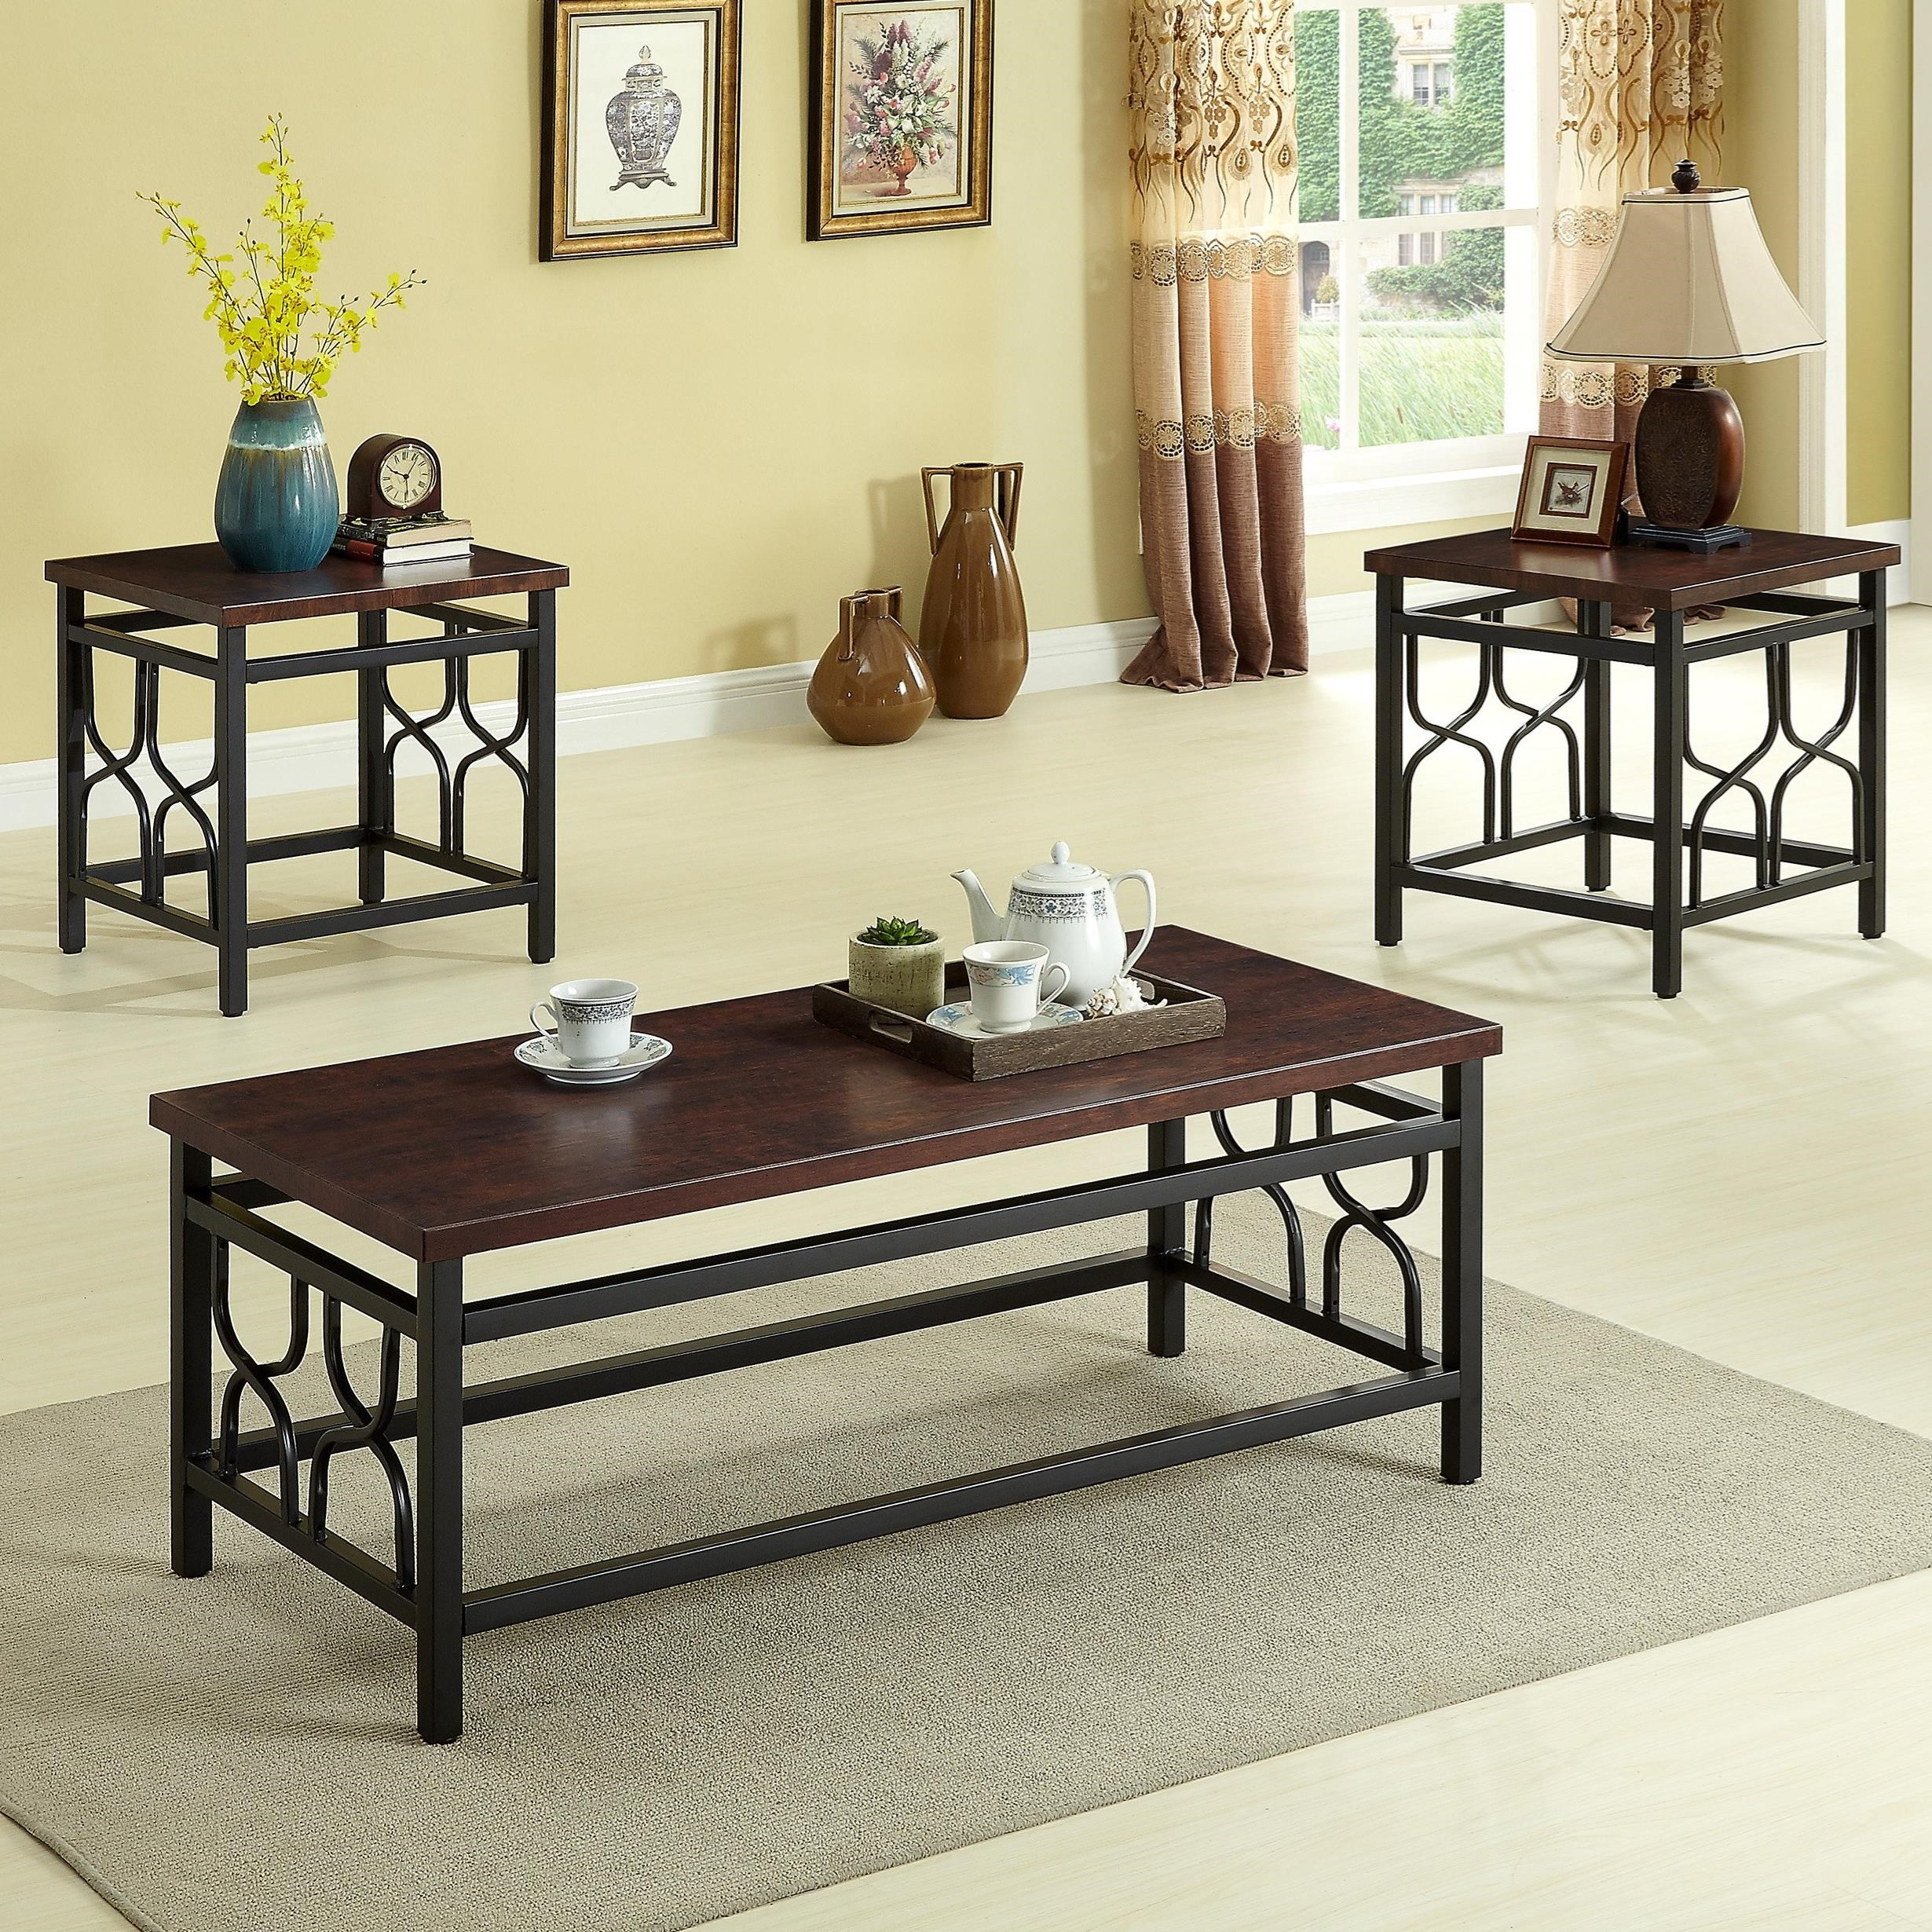 Benjamin Accent Accent Table Group by Crown Mark at Northeast Factory Direct